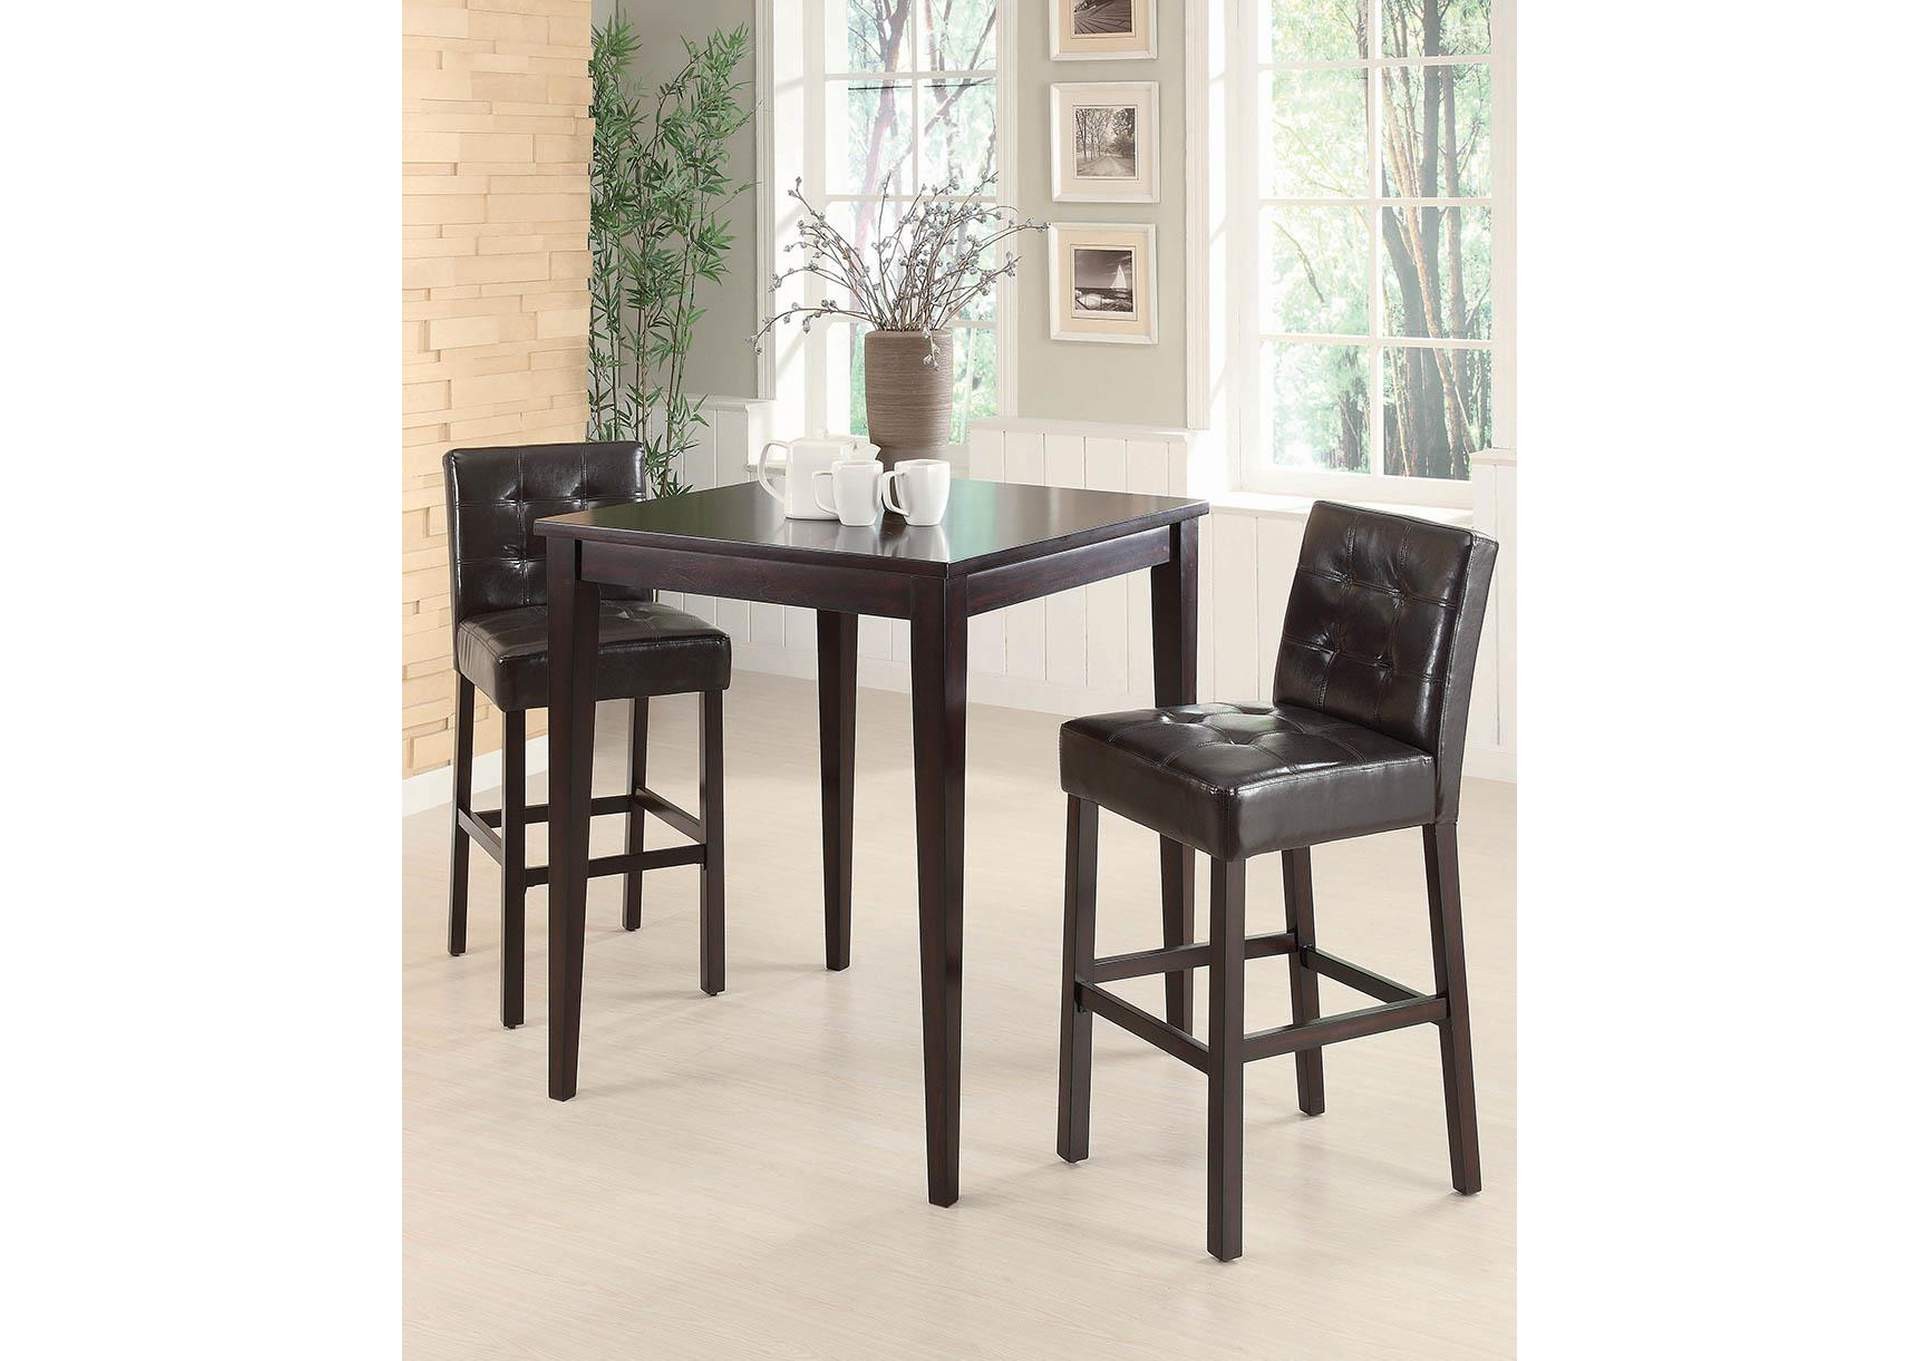 Davis home furniture asheville nc cappuccino cappuccino bar chair set of 2 Davis home furniture asheville hours